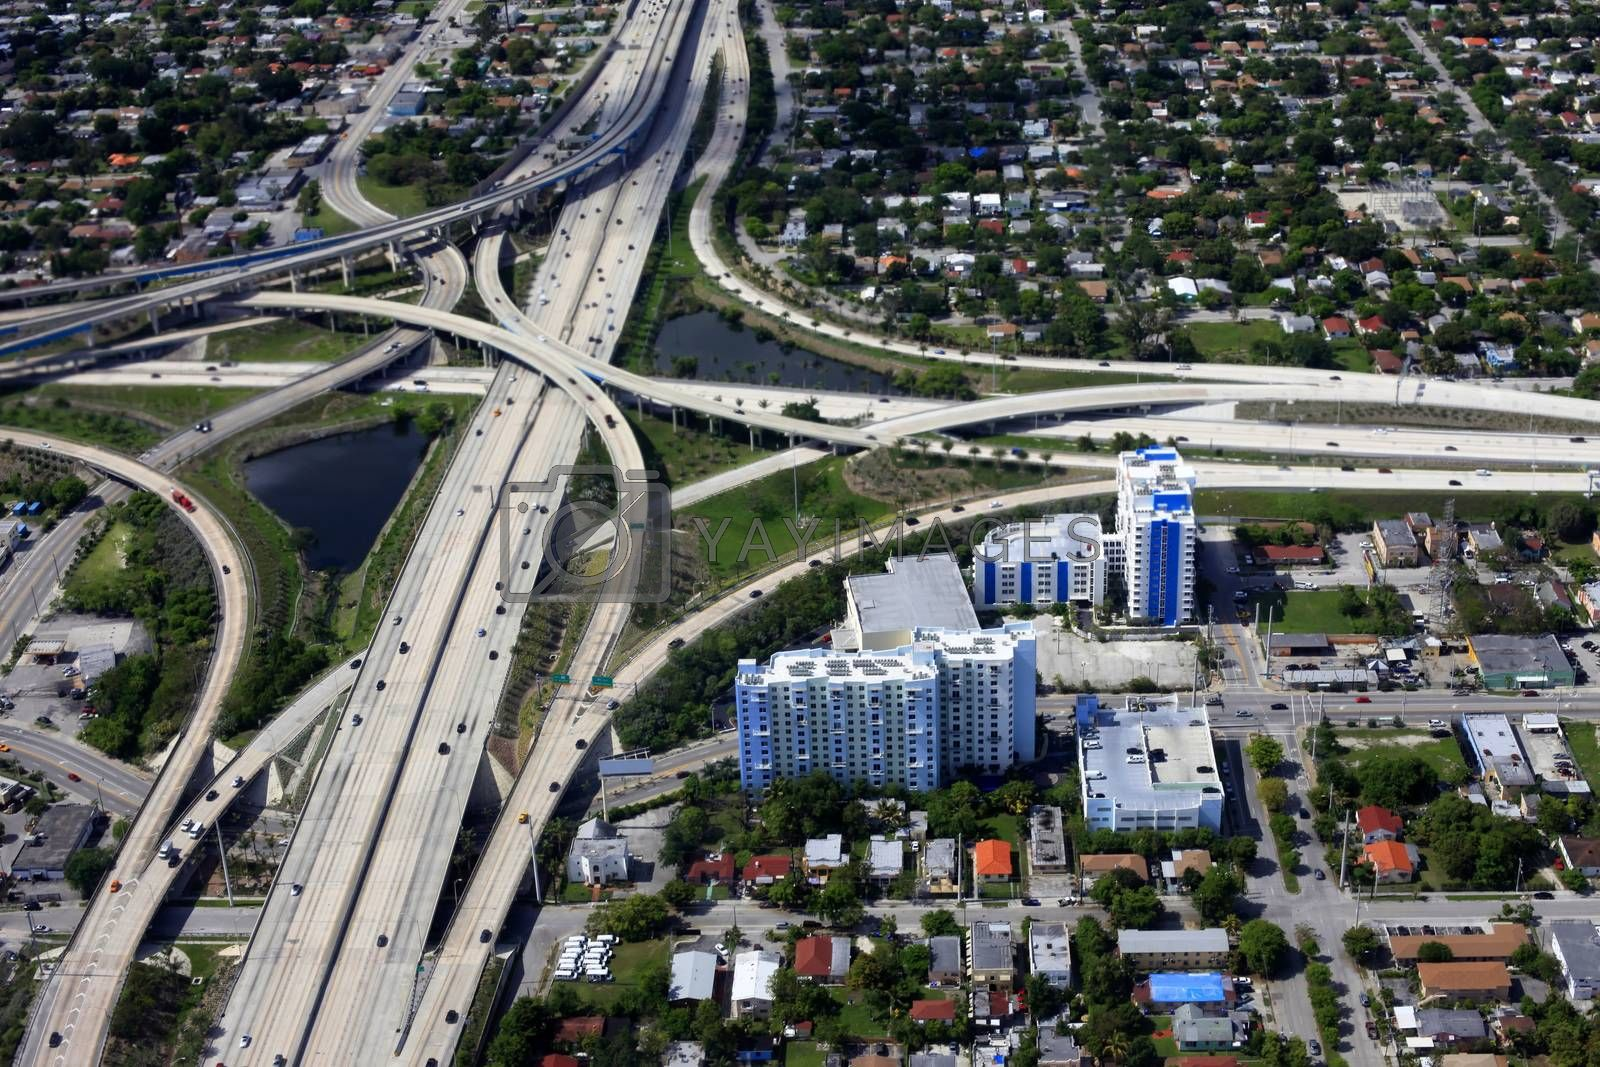 View from above of roads junction in Miami downtown.